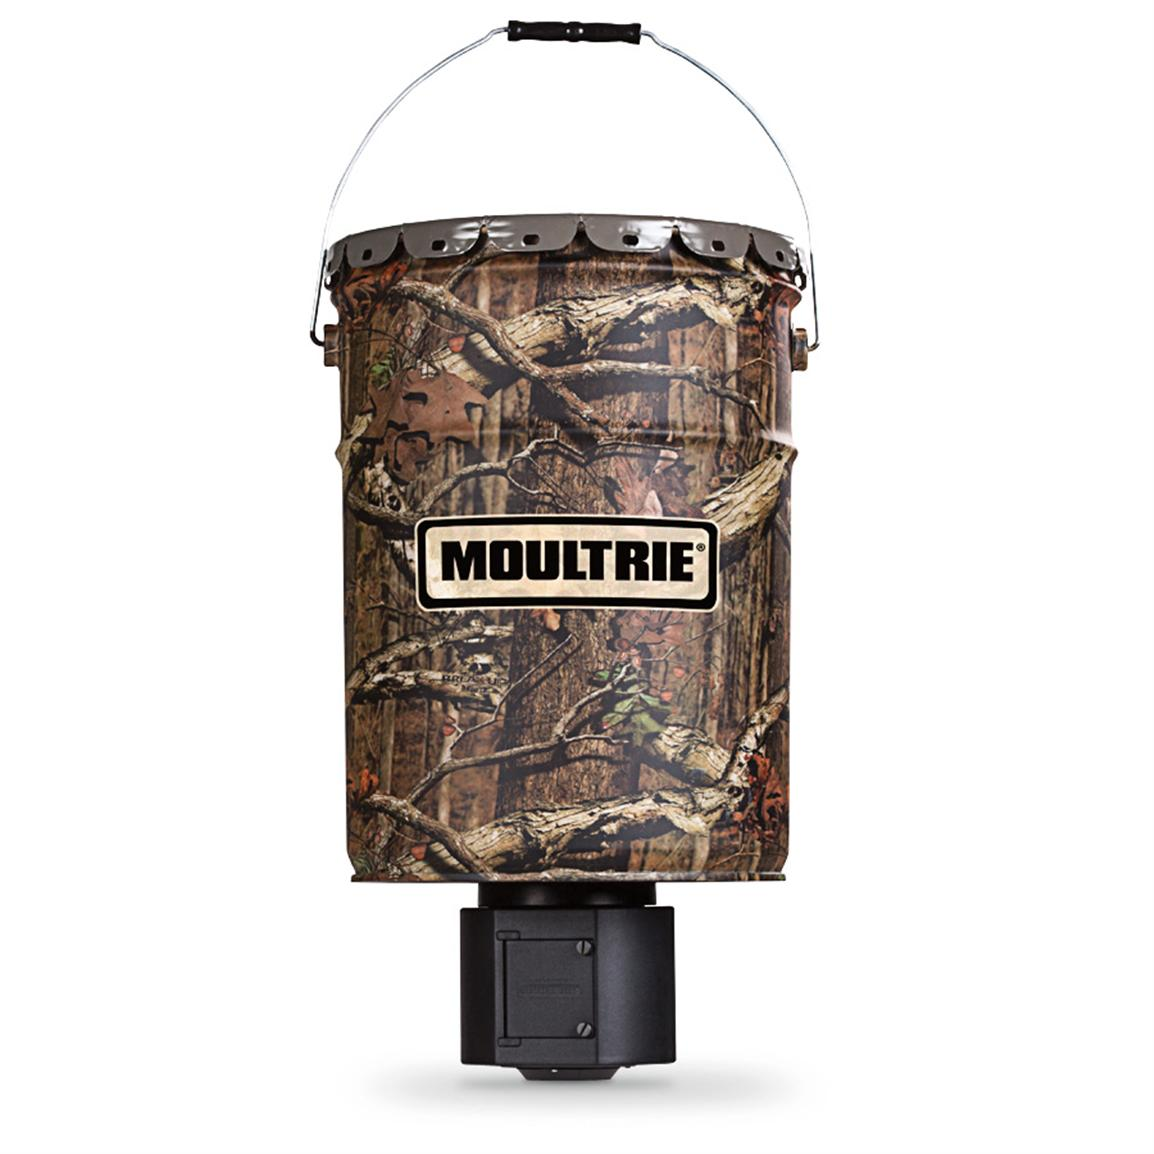 Moultrie® Quiet 6.5-gallon Hanging Deer Feeder